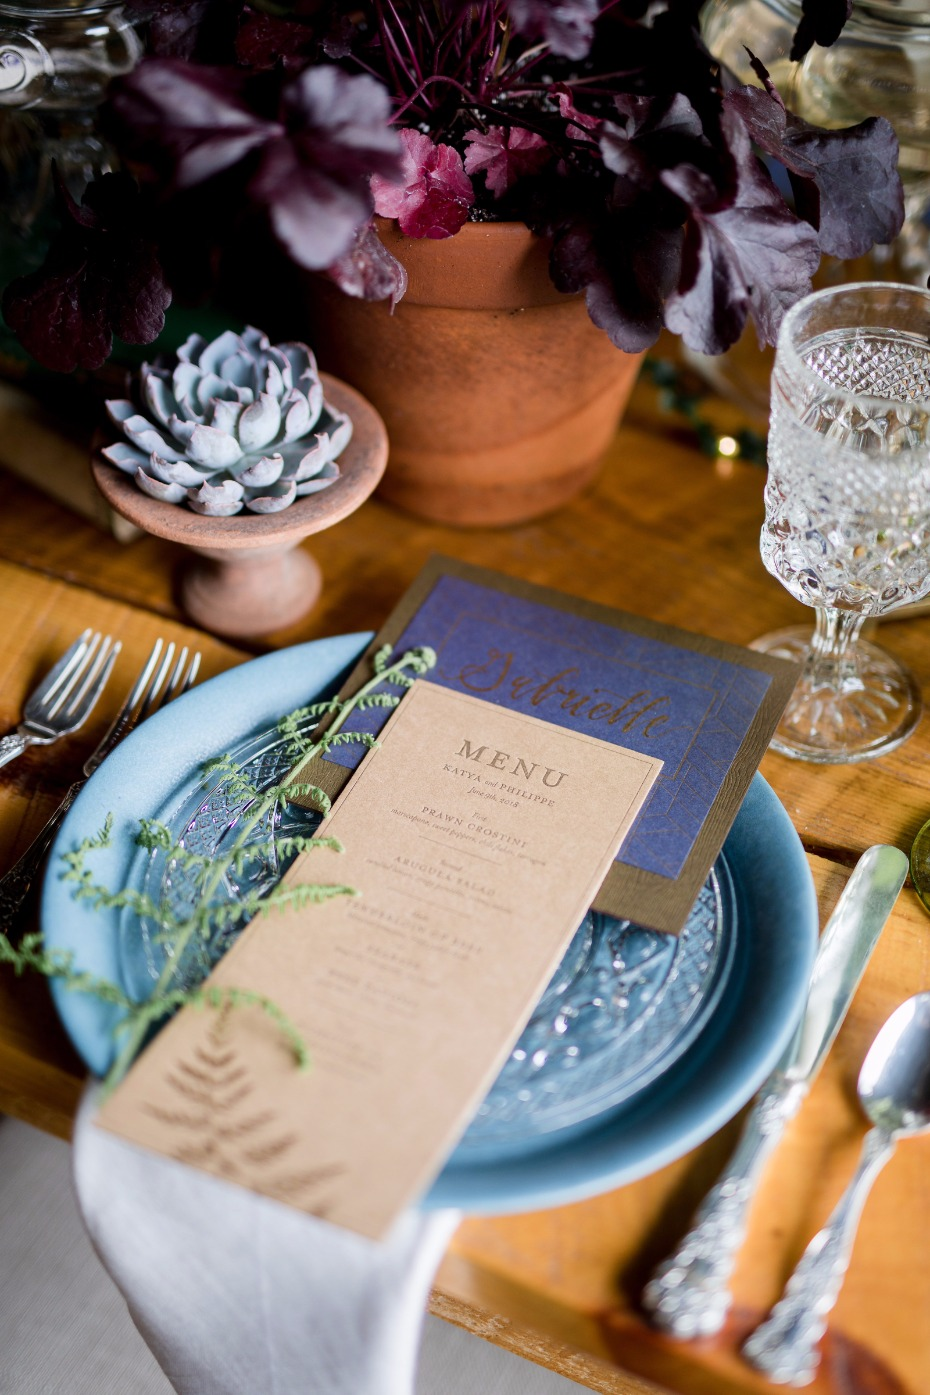 letterpressed wedding menu and place cards make your day extra special